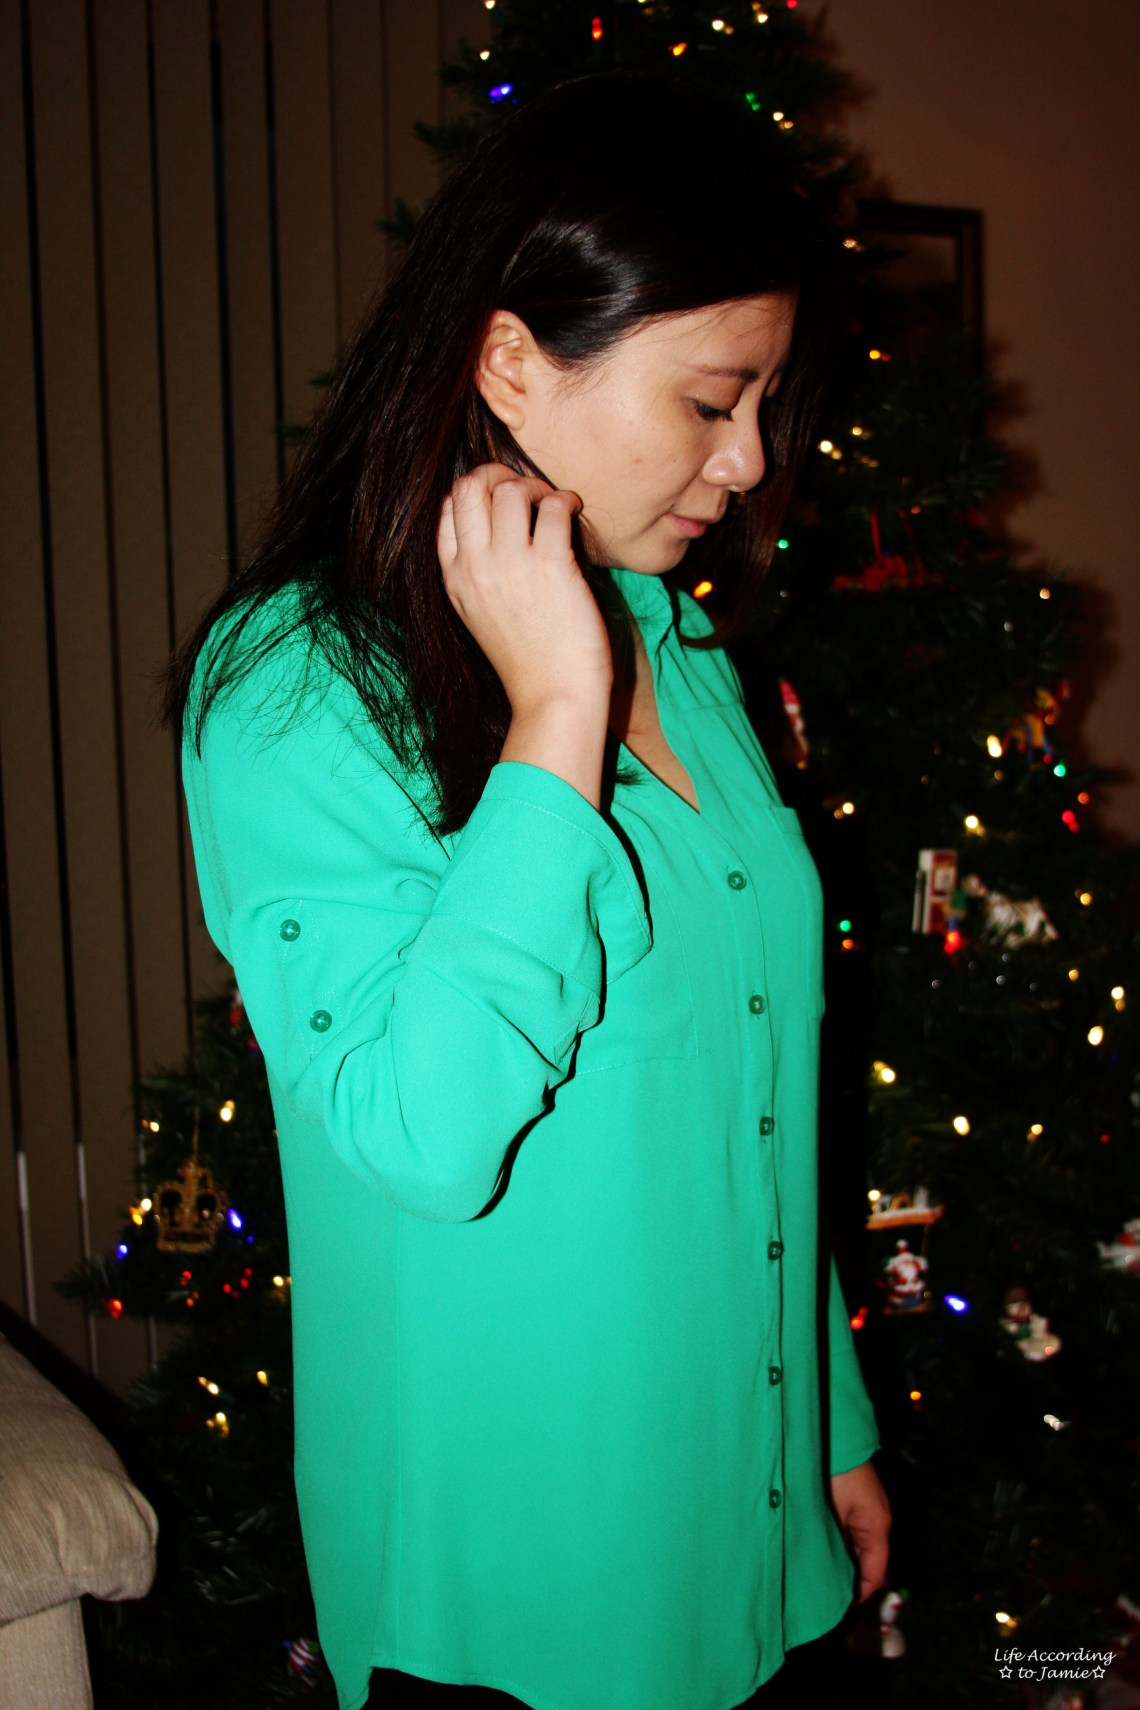 Green Portofino Shirt